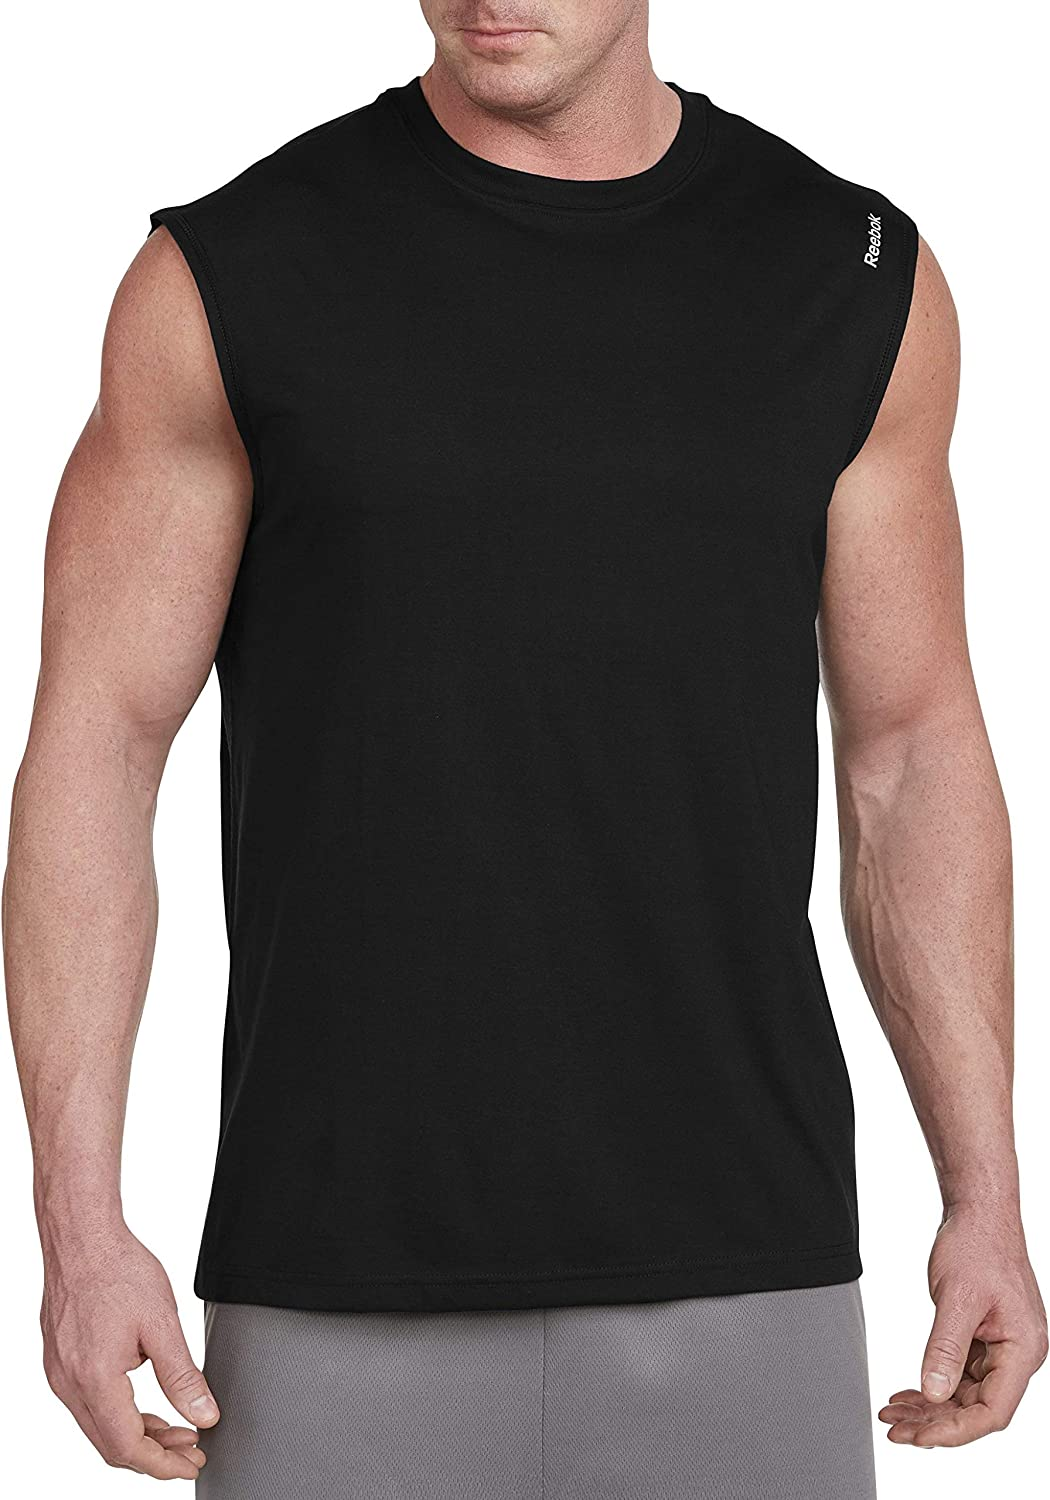 Reebok Bay Big & Tall Play Dry Sleeveless Tech Top